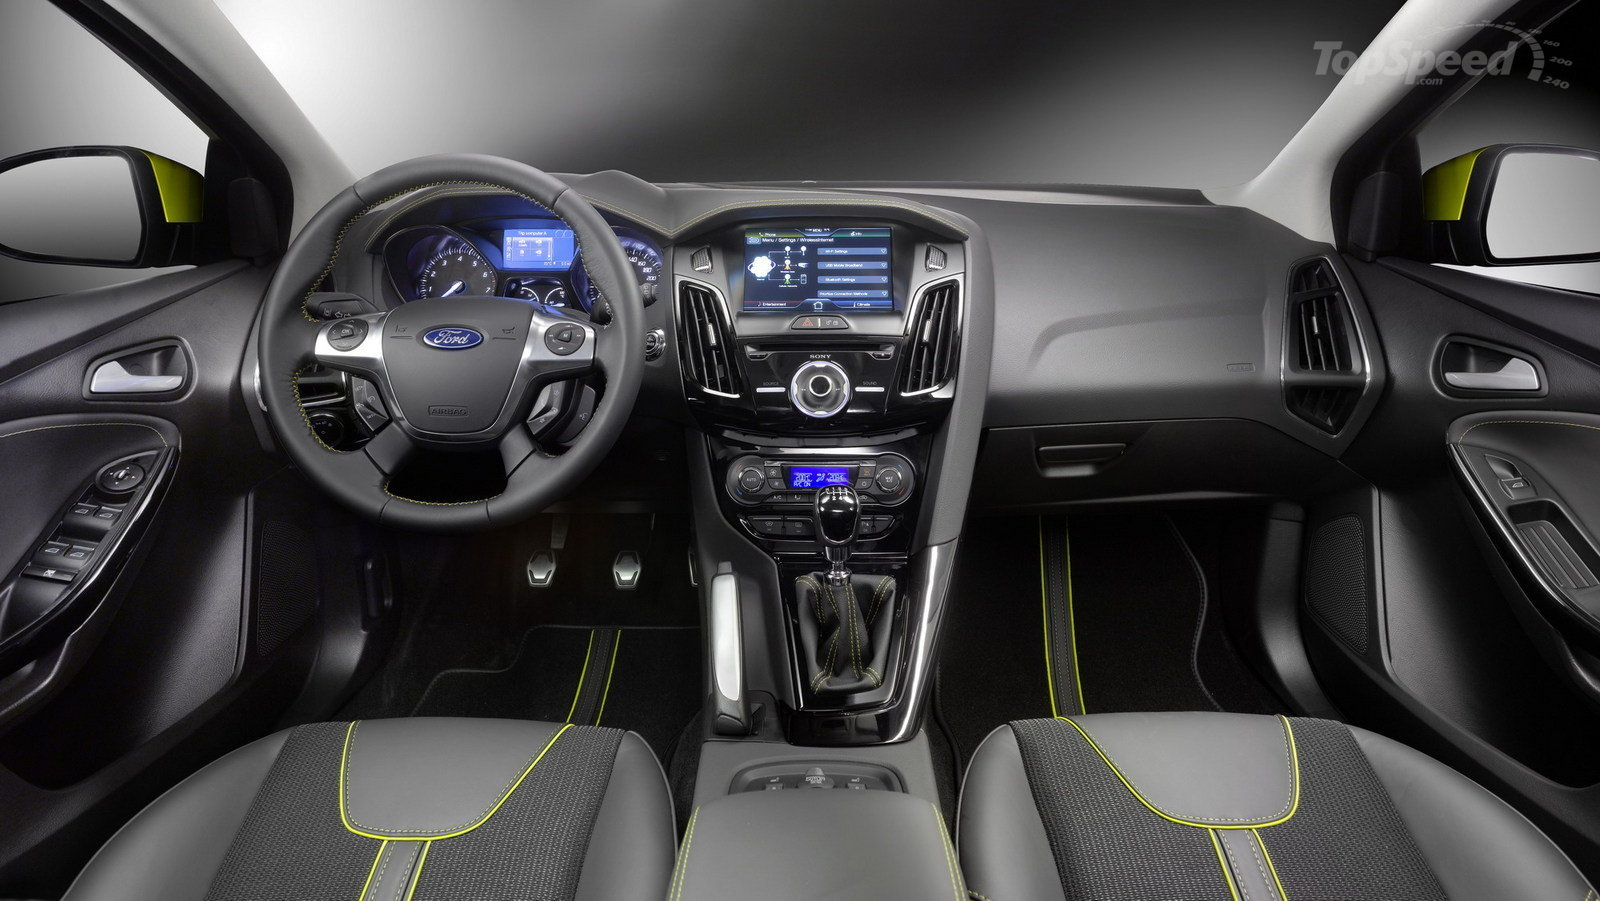 Review new ford focus 2012 the site provide information about cars interior exterior review